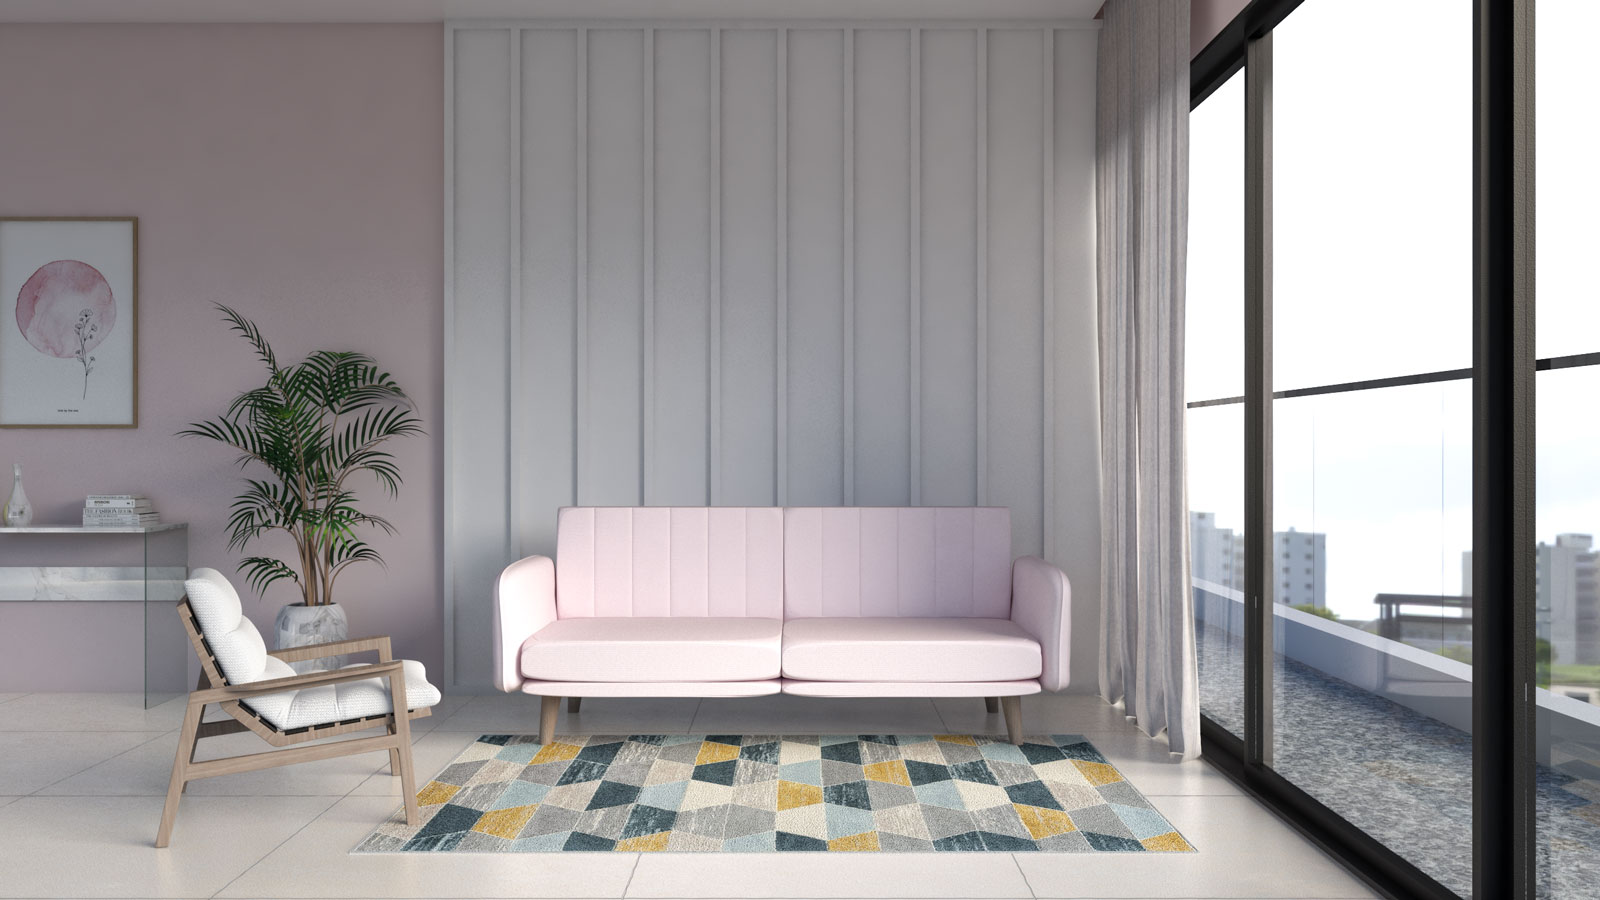 Colorful blue, gray, yellow and cream rug with pink couch